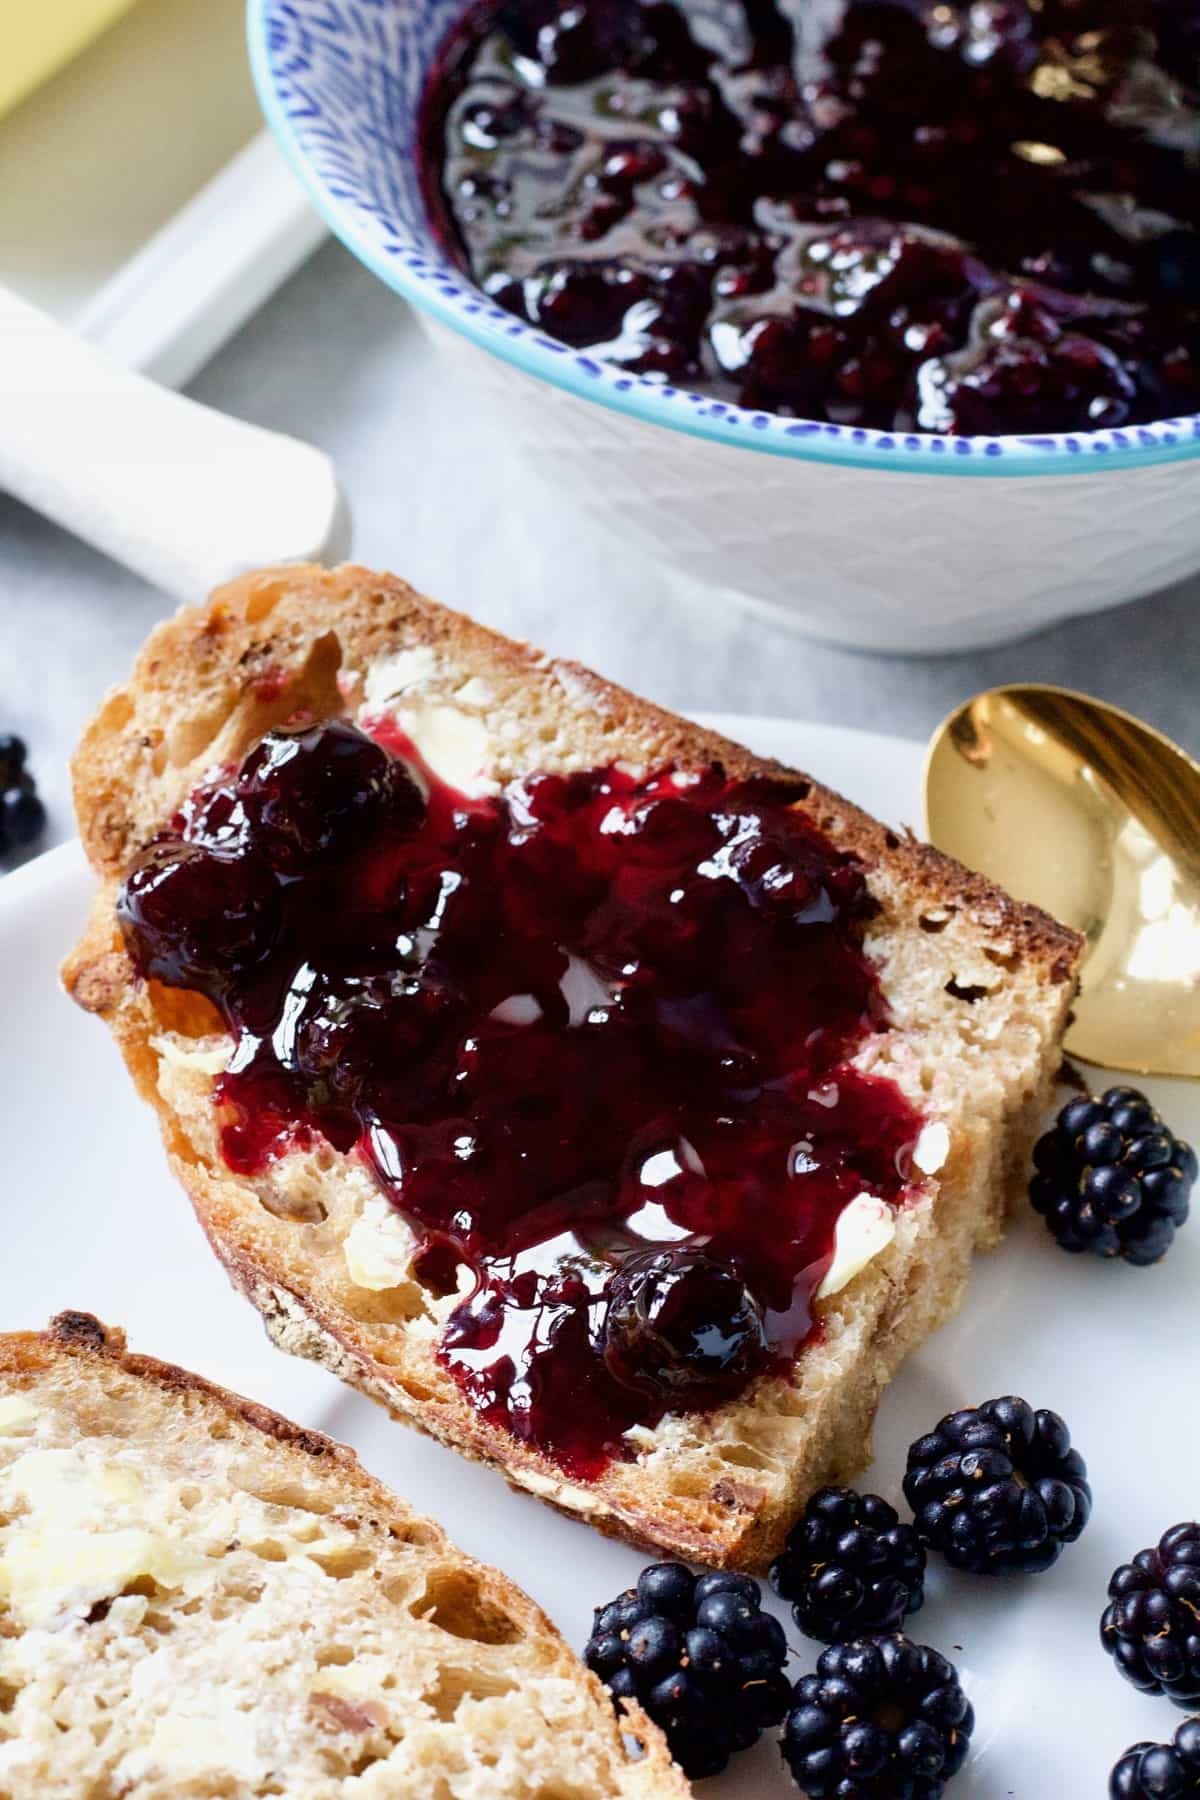 Half a slice of bread with blackberry jam on it.